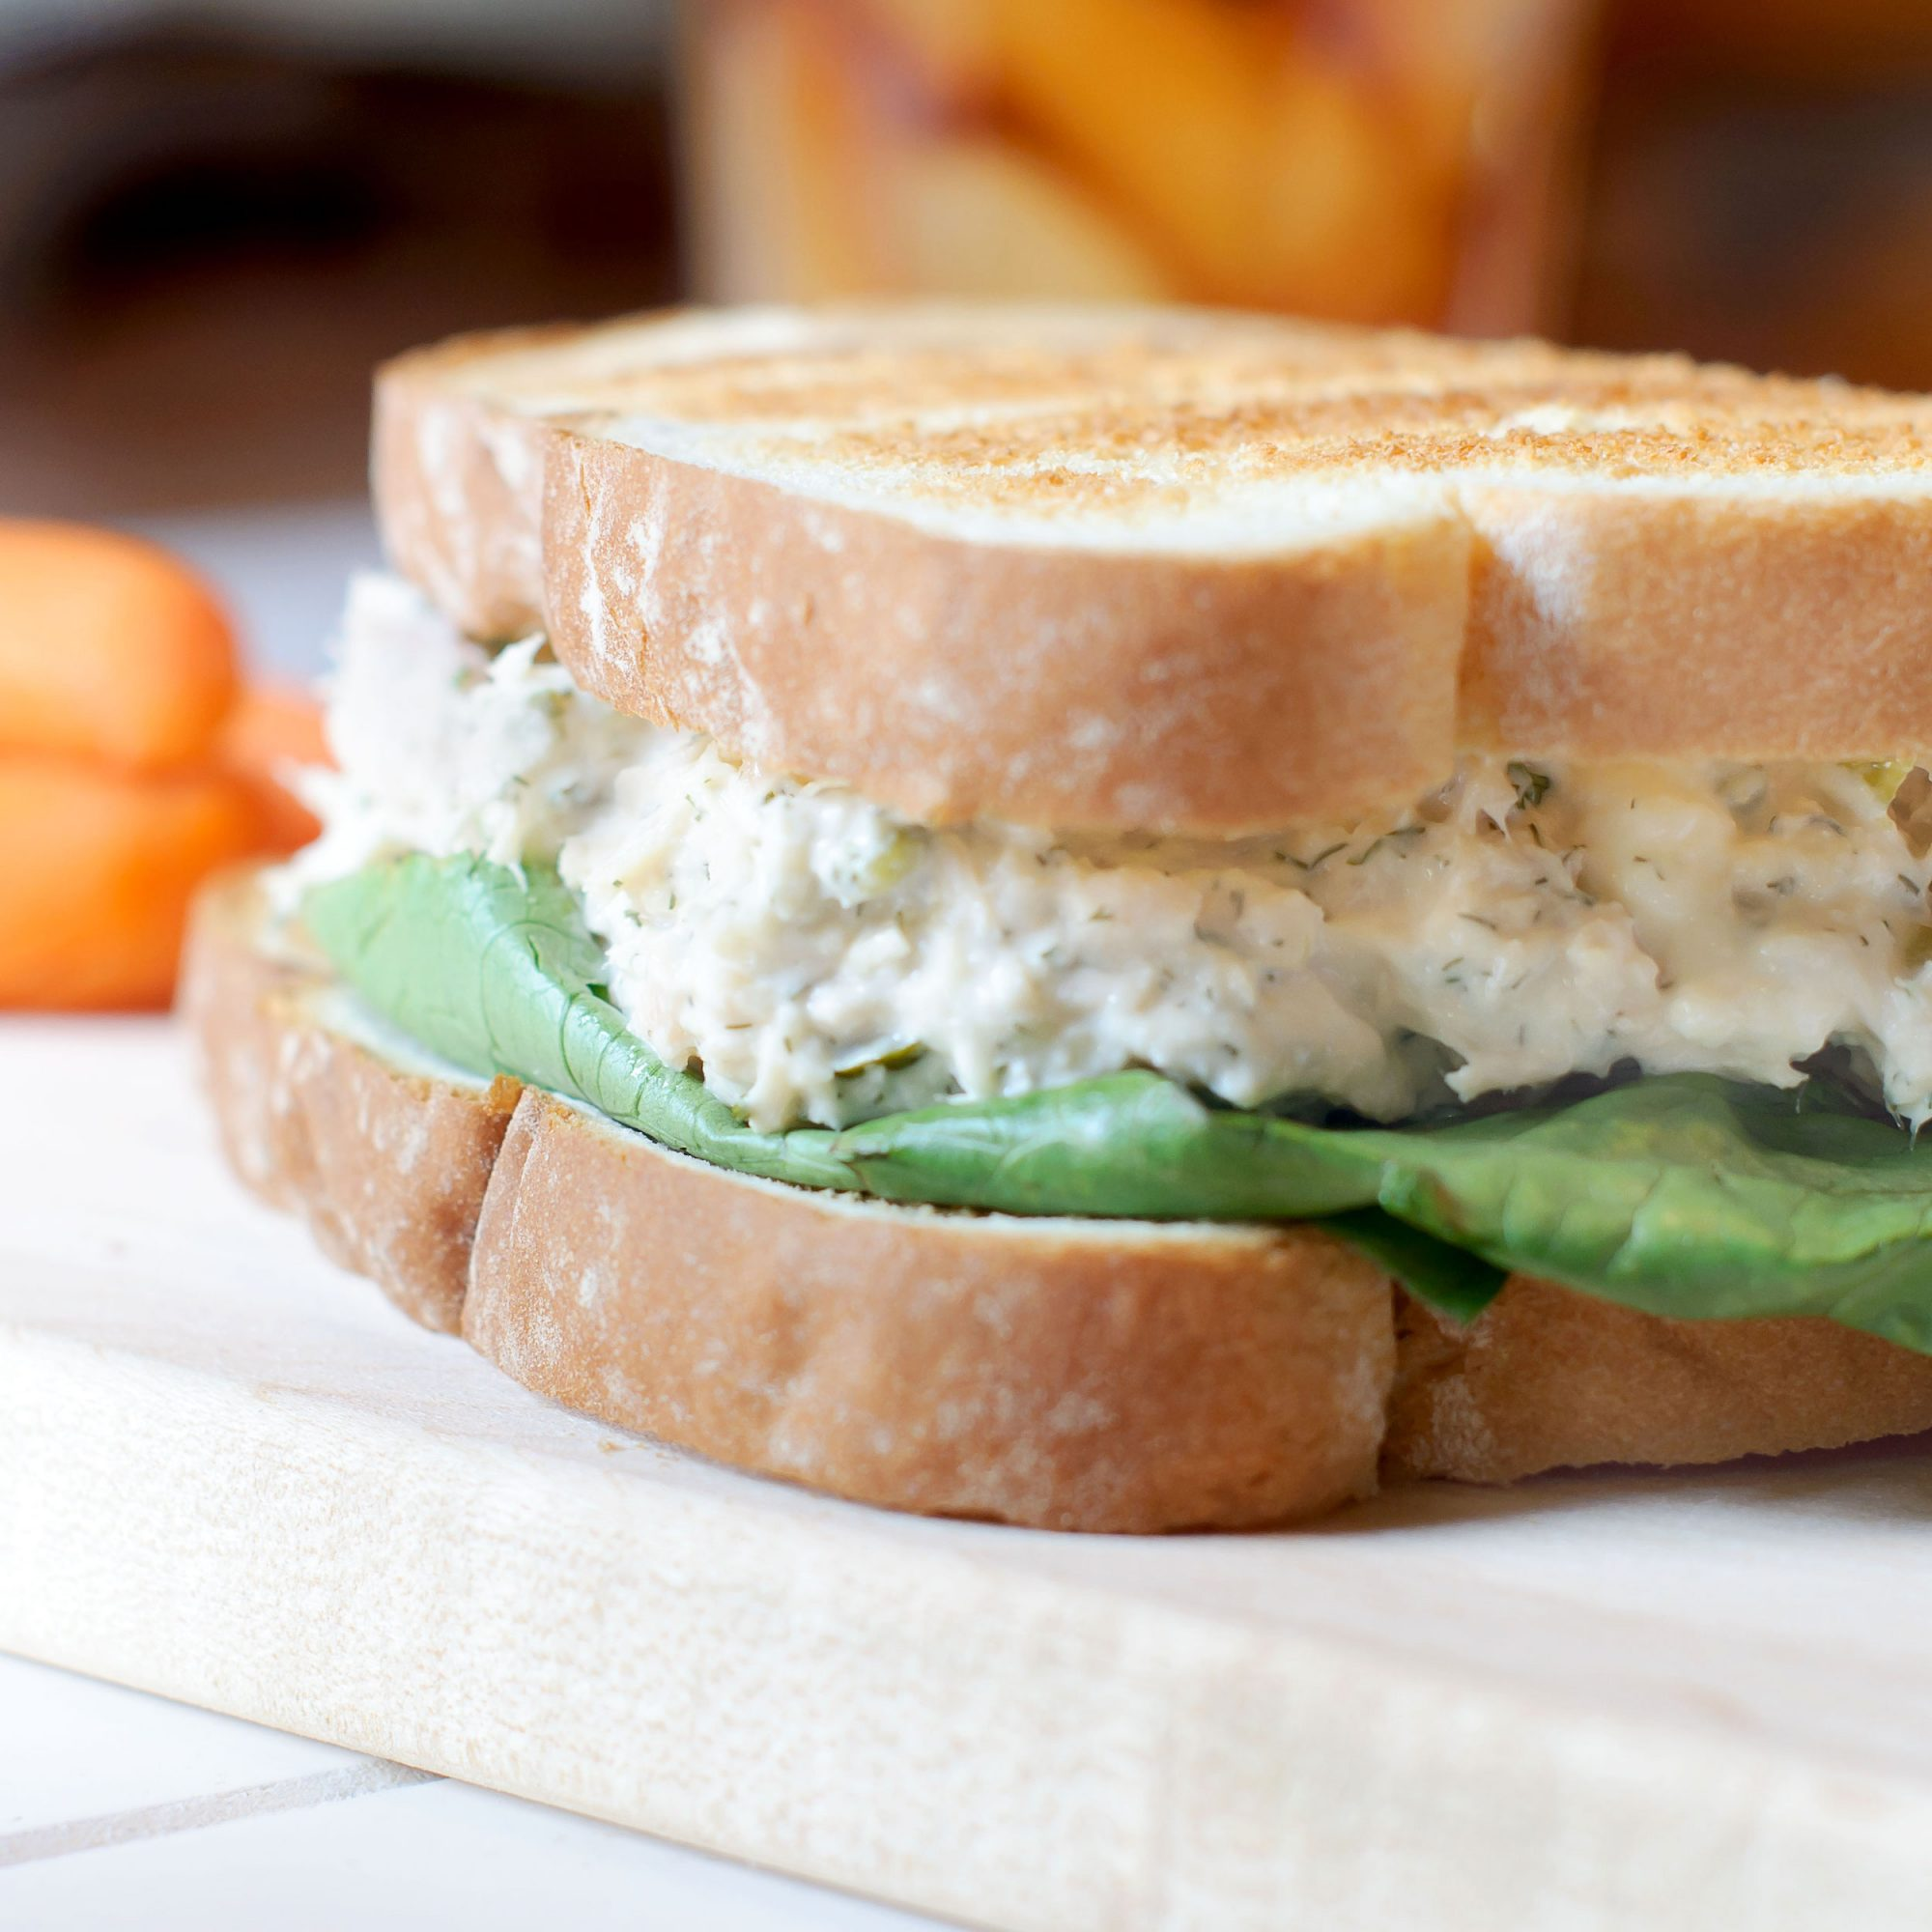 A tuna salad sandwich on toasted white bread